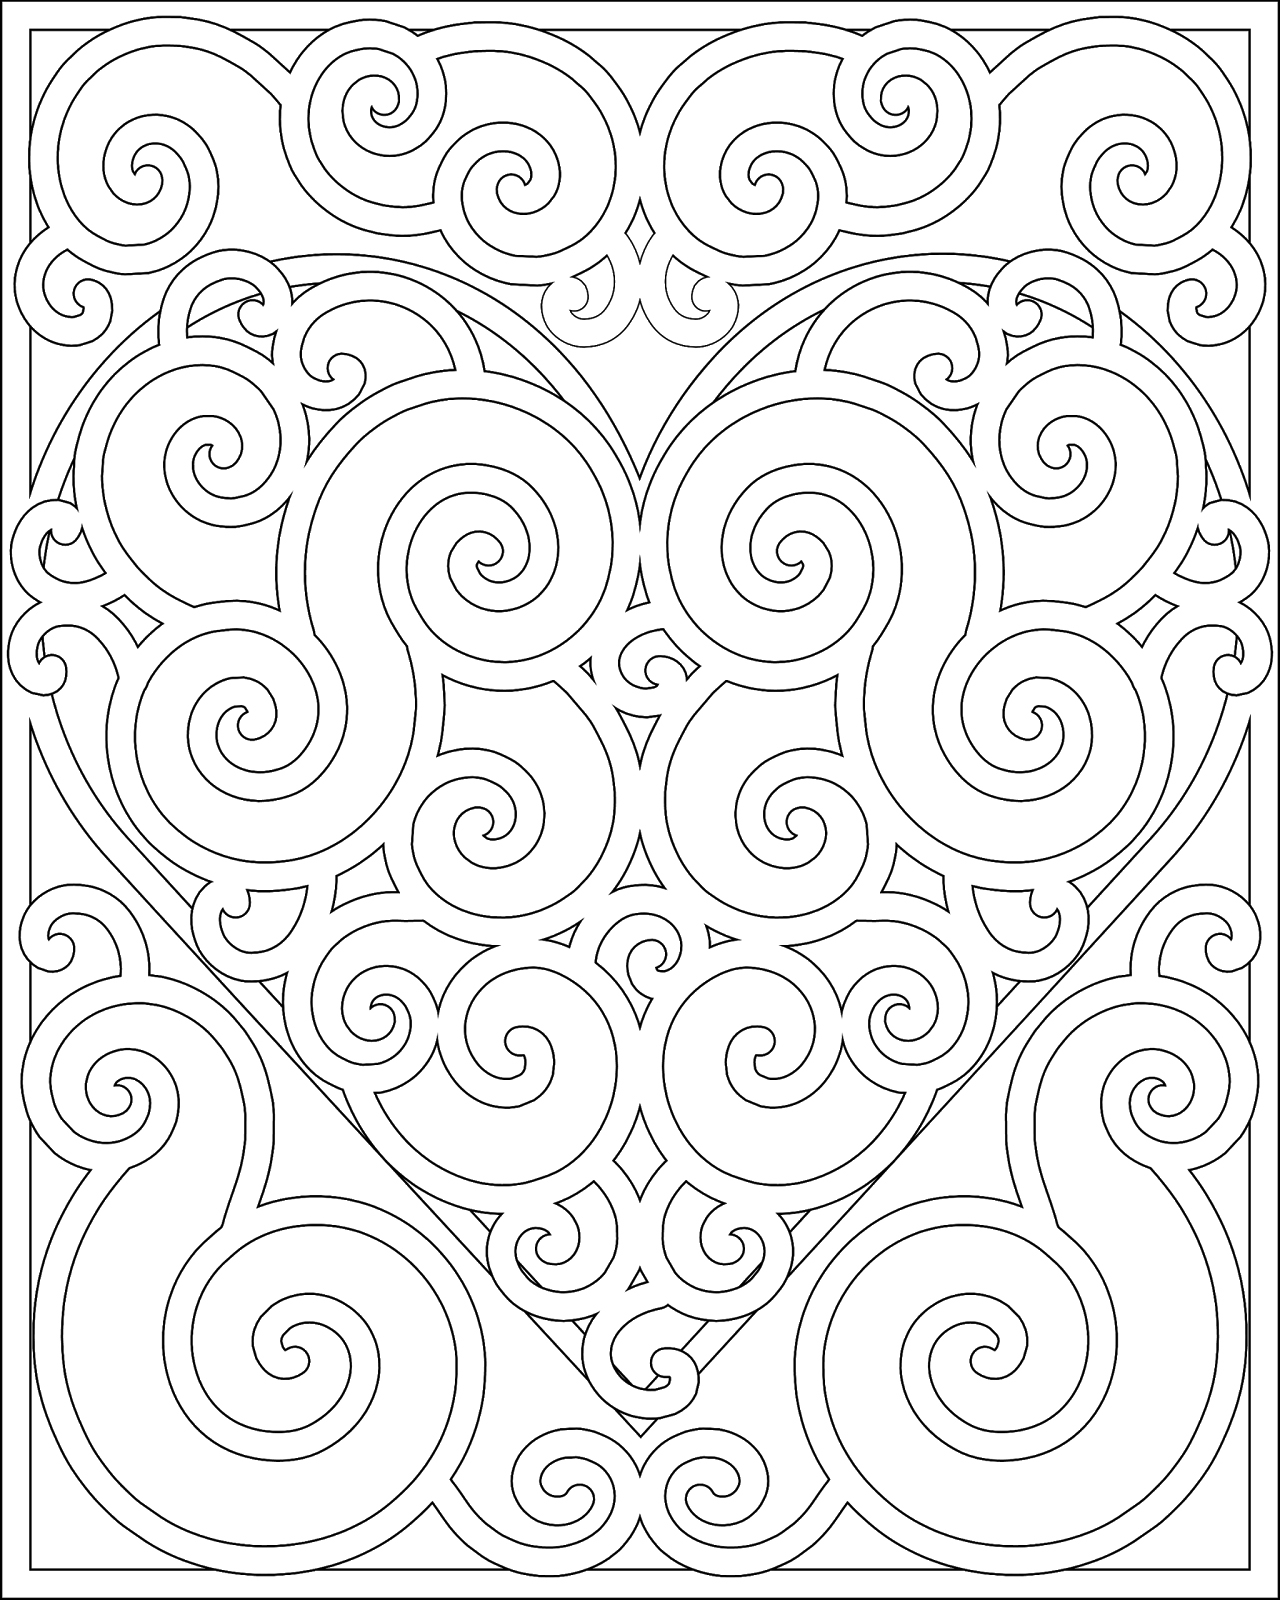 pattern coloring pages for kids free printable geometric coloring pages for adults pattern kids coloring pages for